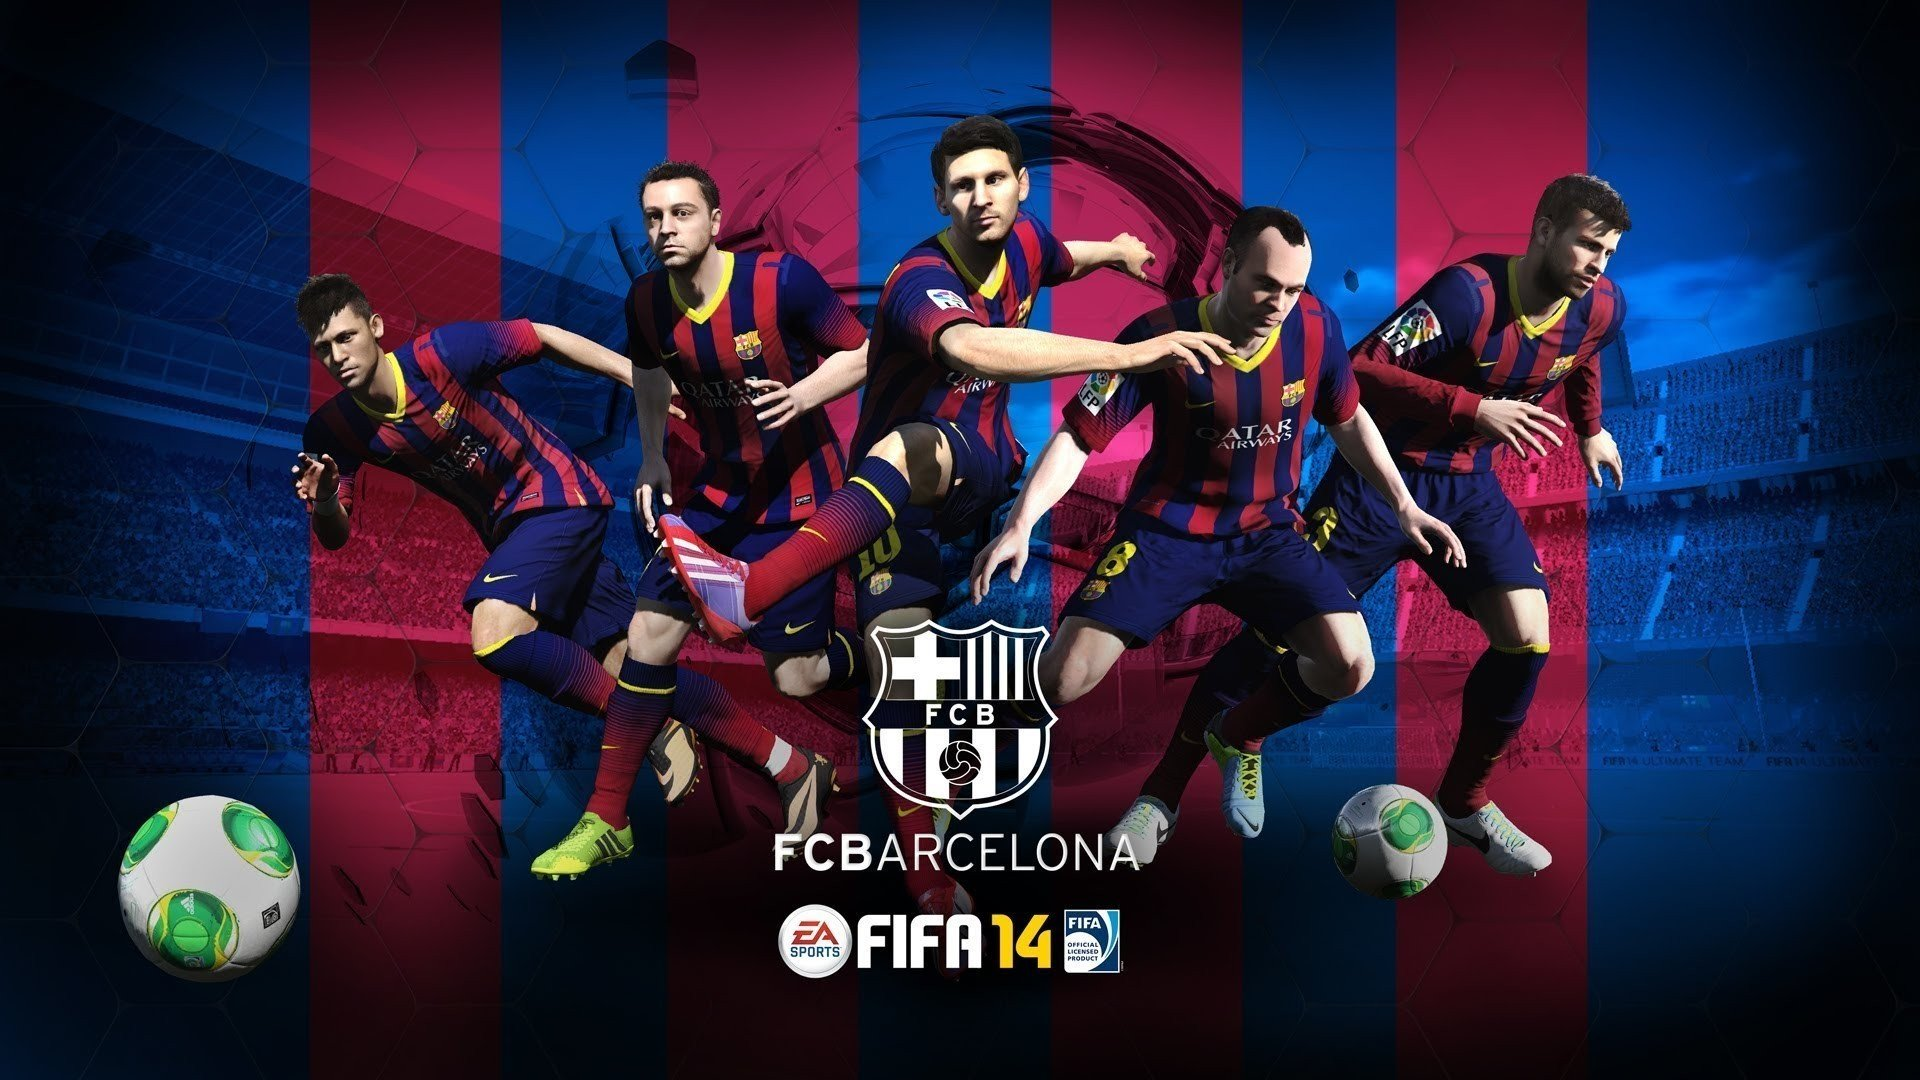 Fifa 14 world cup soccer game fifa14 77 wallpaper 1920x1080 fifa 14 world cup soccer game fifa14 77 wallpaper 1920x1080 362136 wallpaperup voltagebd Images